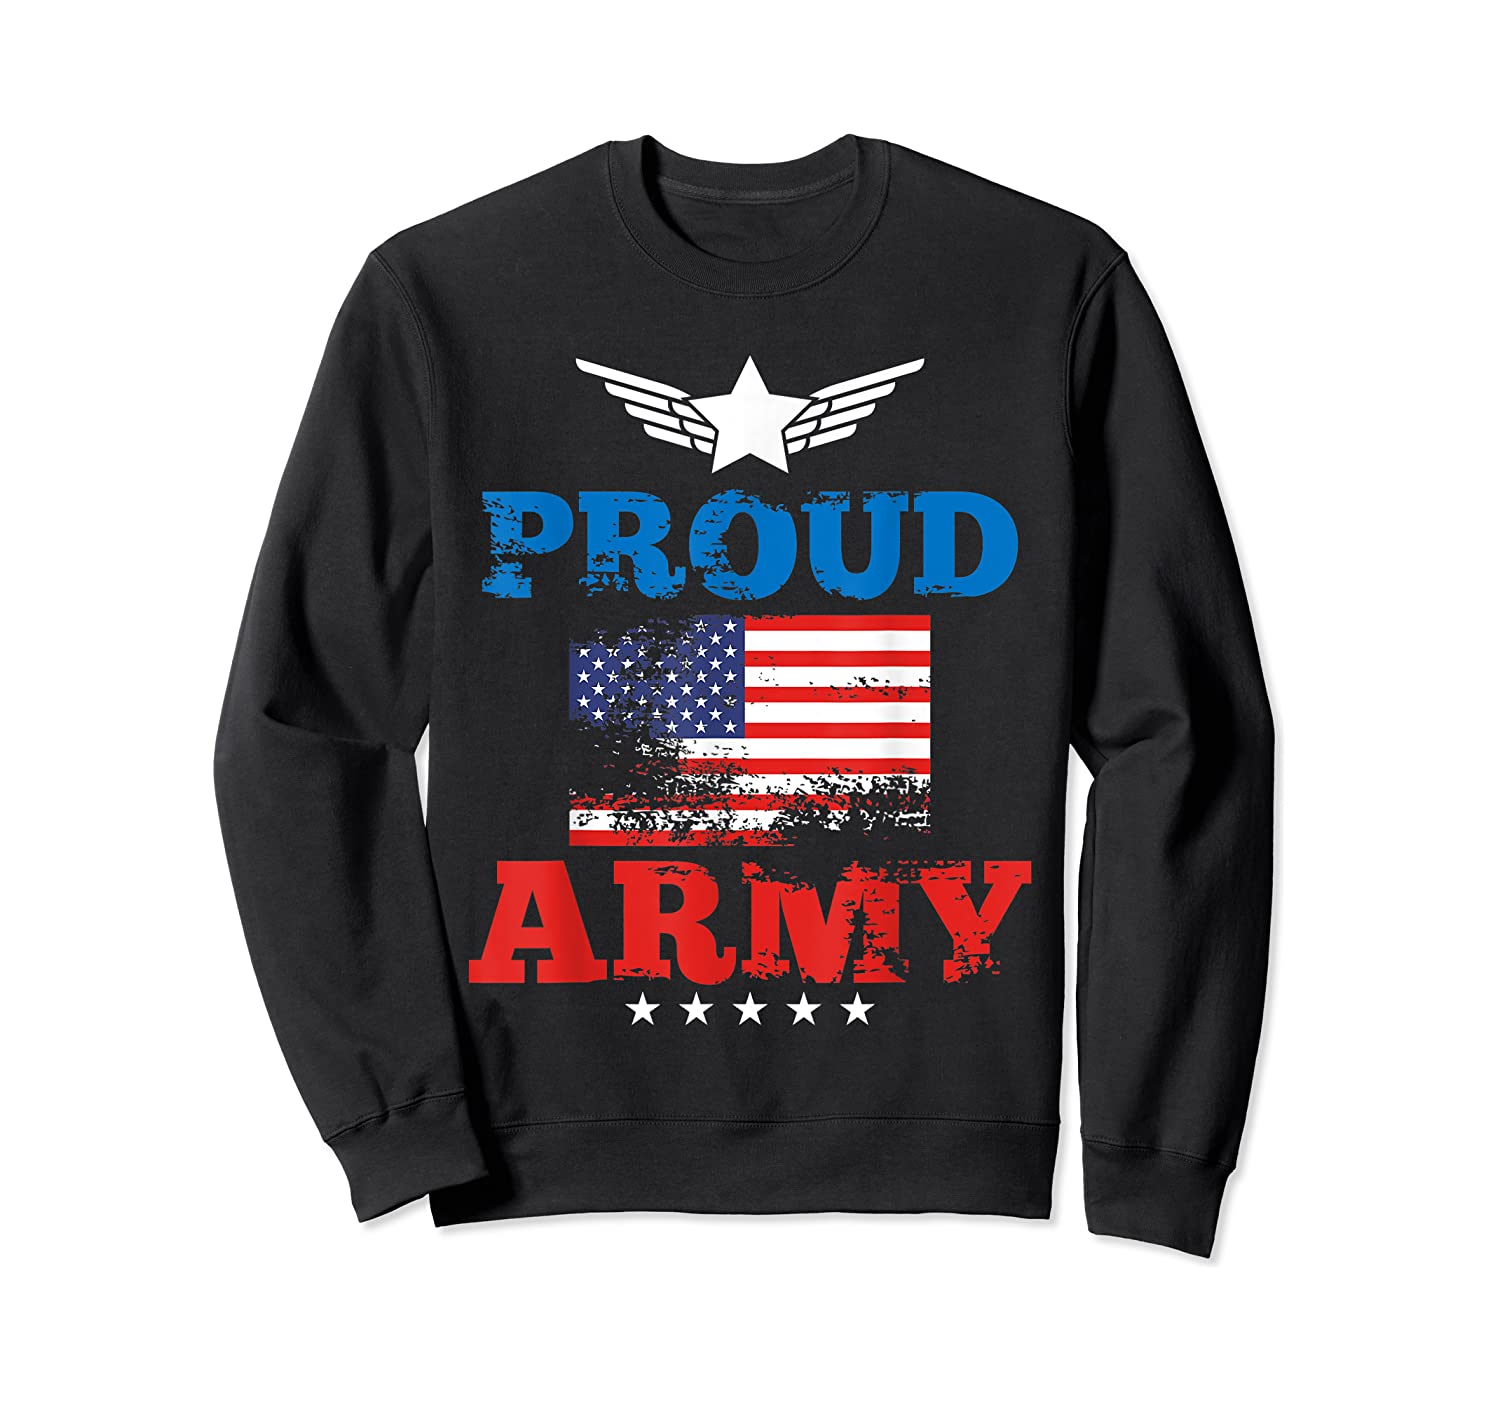 Proud Army American Soldier Air Flag Honor Gift T-shirt Crewneck Sweater